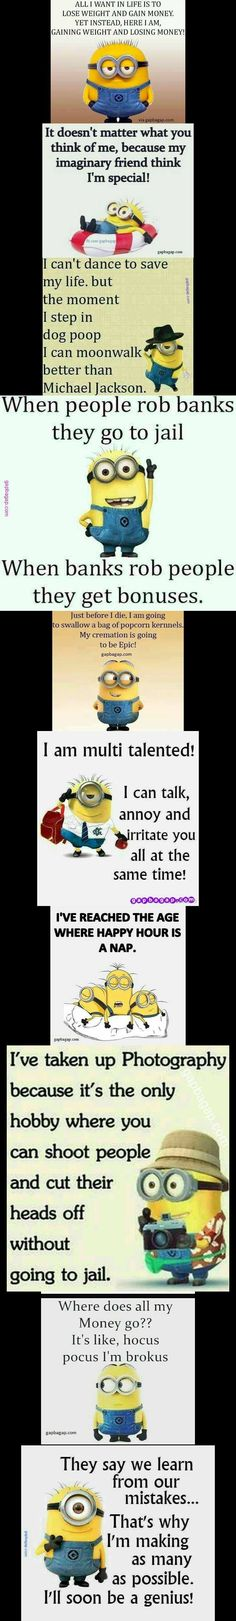 Top 10 Funniest Memes By The #Minions - funny minion memes, funny minion quotes, Funny Quote, Minion Quote Of The Day, Quotes - Minion-Quotes.com